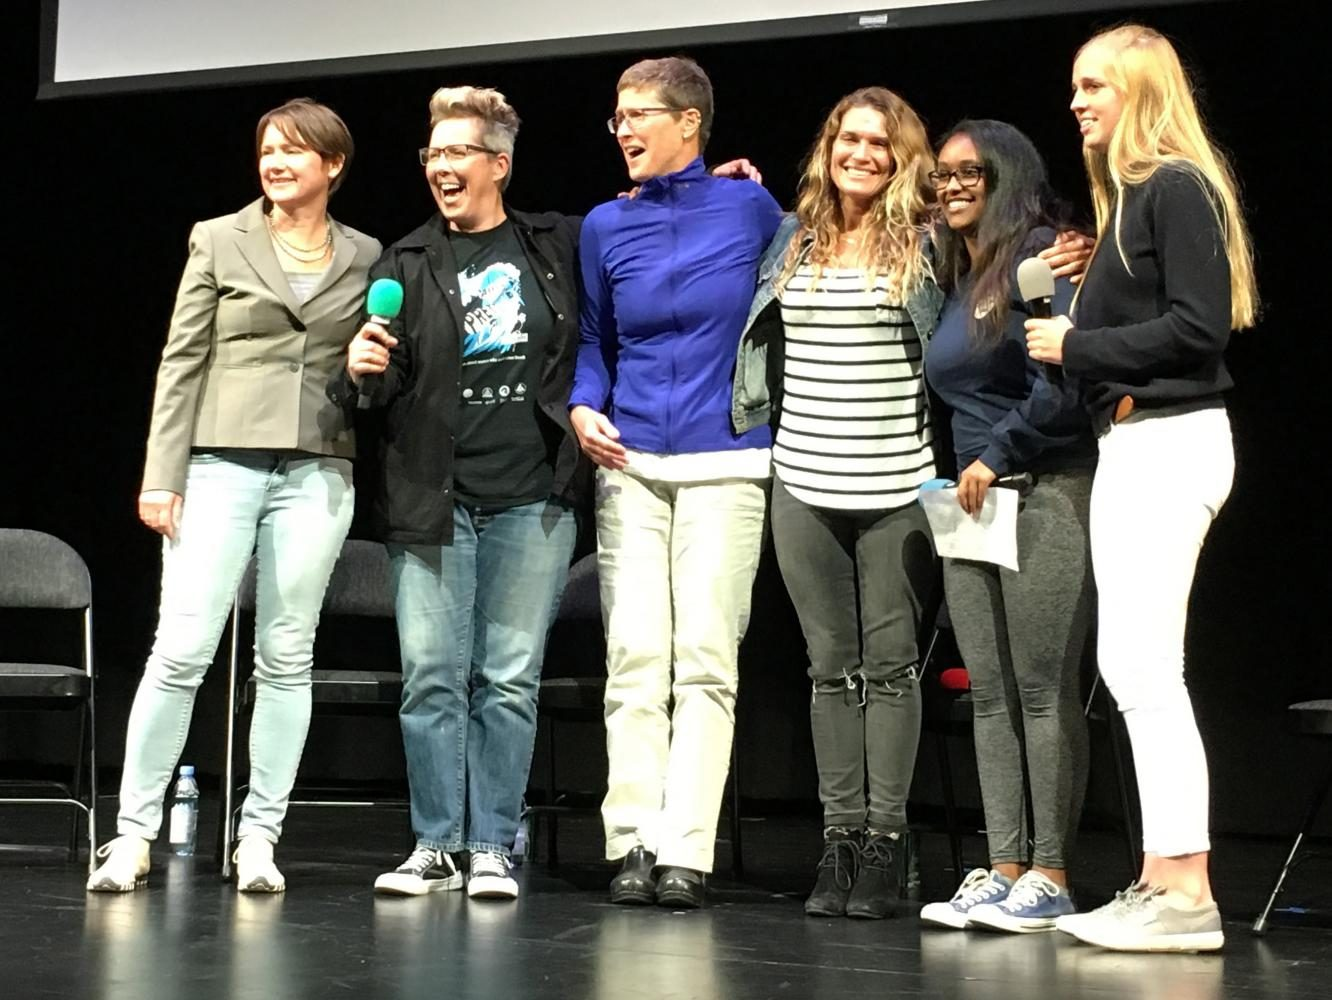 Director of It Aint Pretty Dayla Soul (second from left) poses with the cast of the film, Surf Club head Jemima Scott and Edna Tesfaye after a Q & A session with the cast. The panel followed a screening of the film and a musical performance by sophomore Sophie Egan.